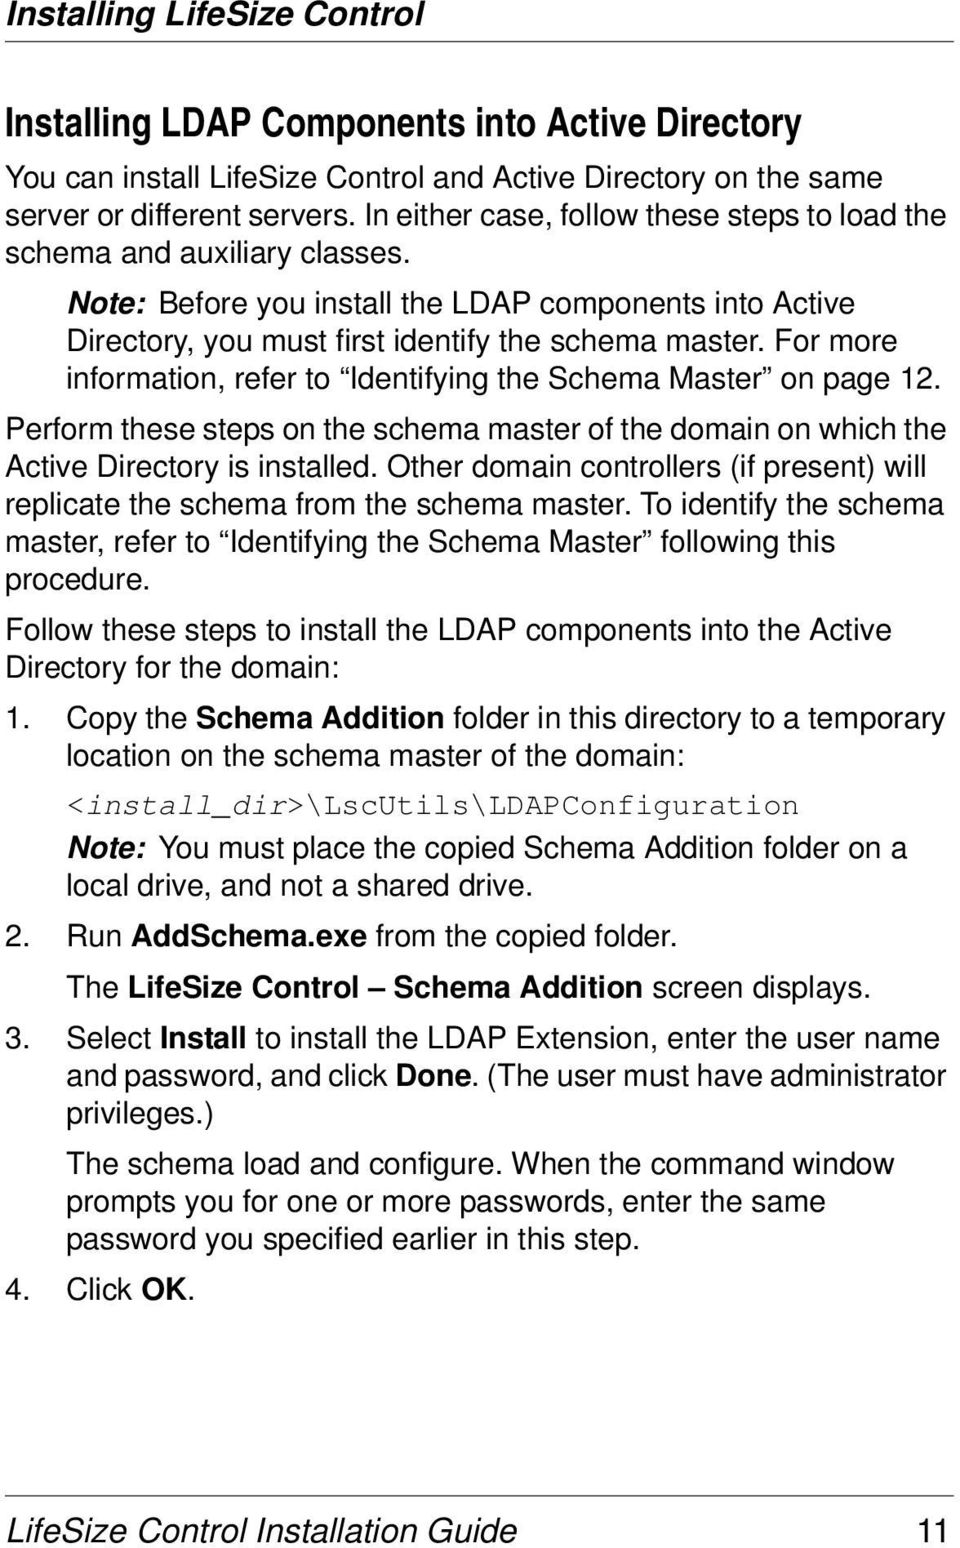 For more information, refer to Identifying the Schema Master on page 12. Perform these steps on the schema master of the domain on which the Active Directory is installed.